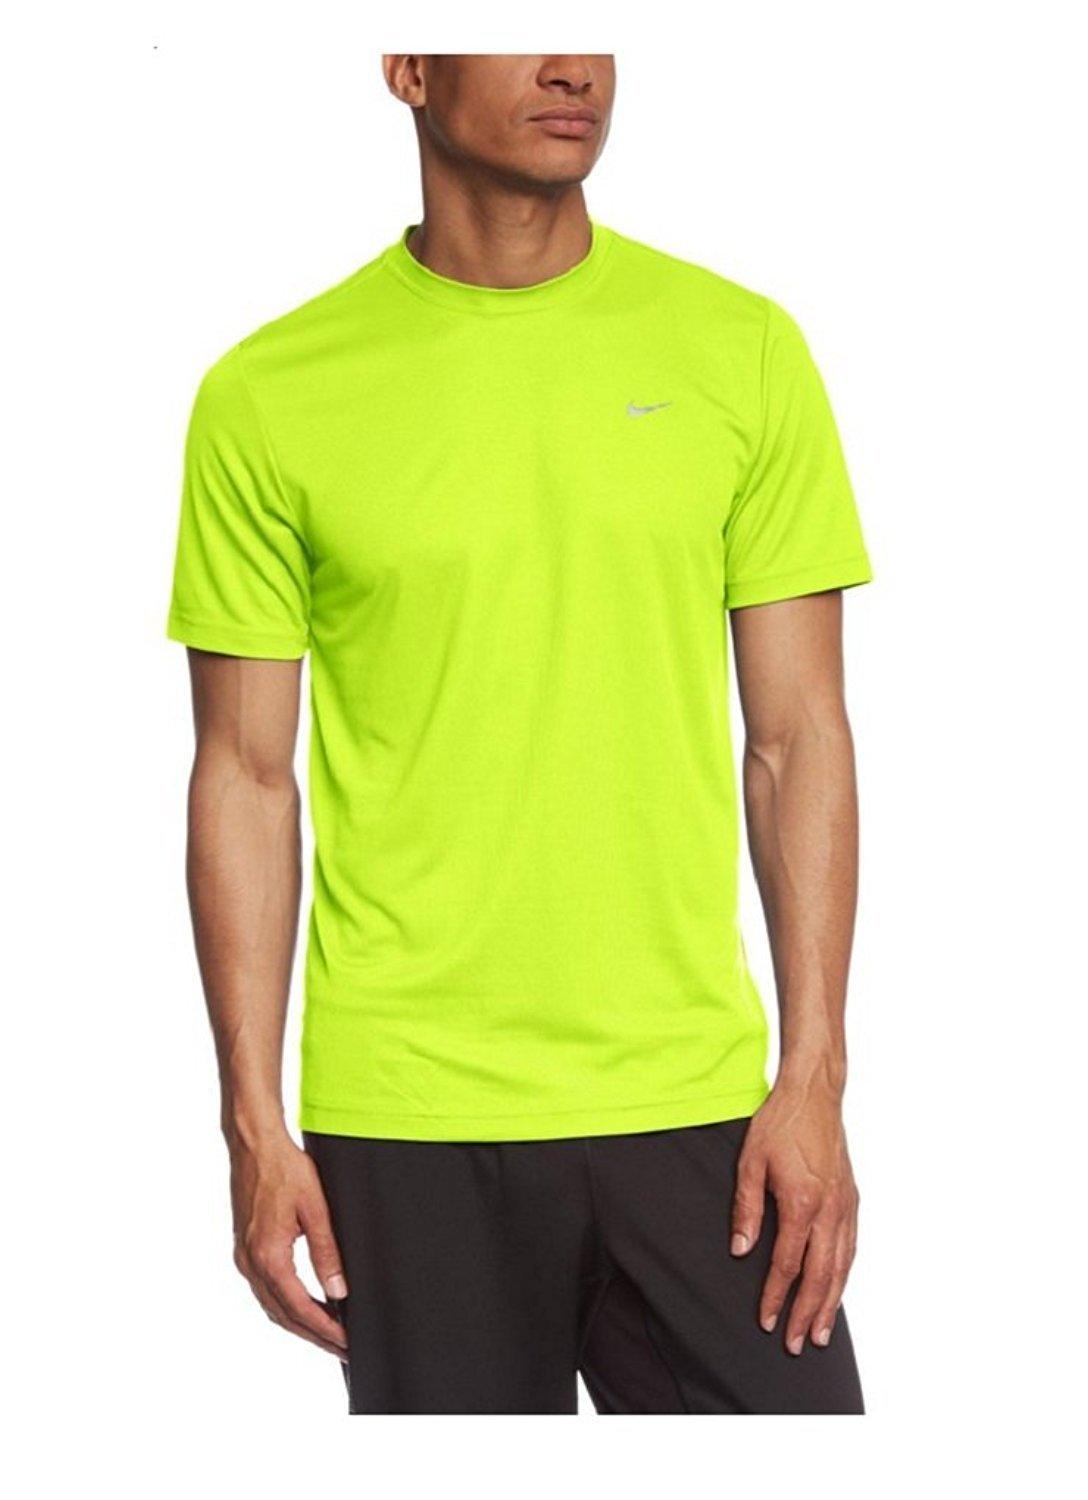 0637318616cb7 Amazon.com: Nike Men's Challenger SS T Shirt Volt/Reflective Silver Size  X-Small: Sports & Outdoors